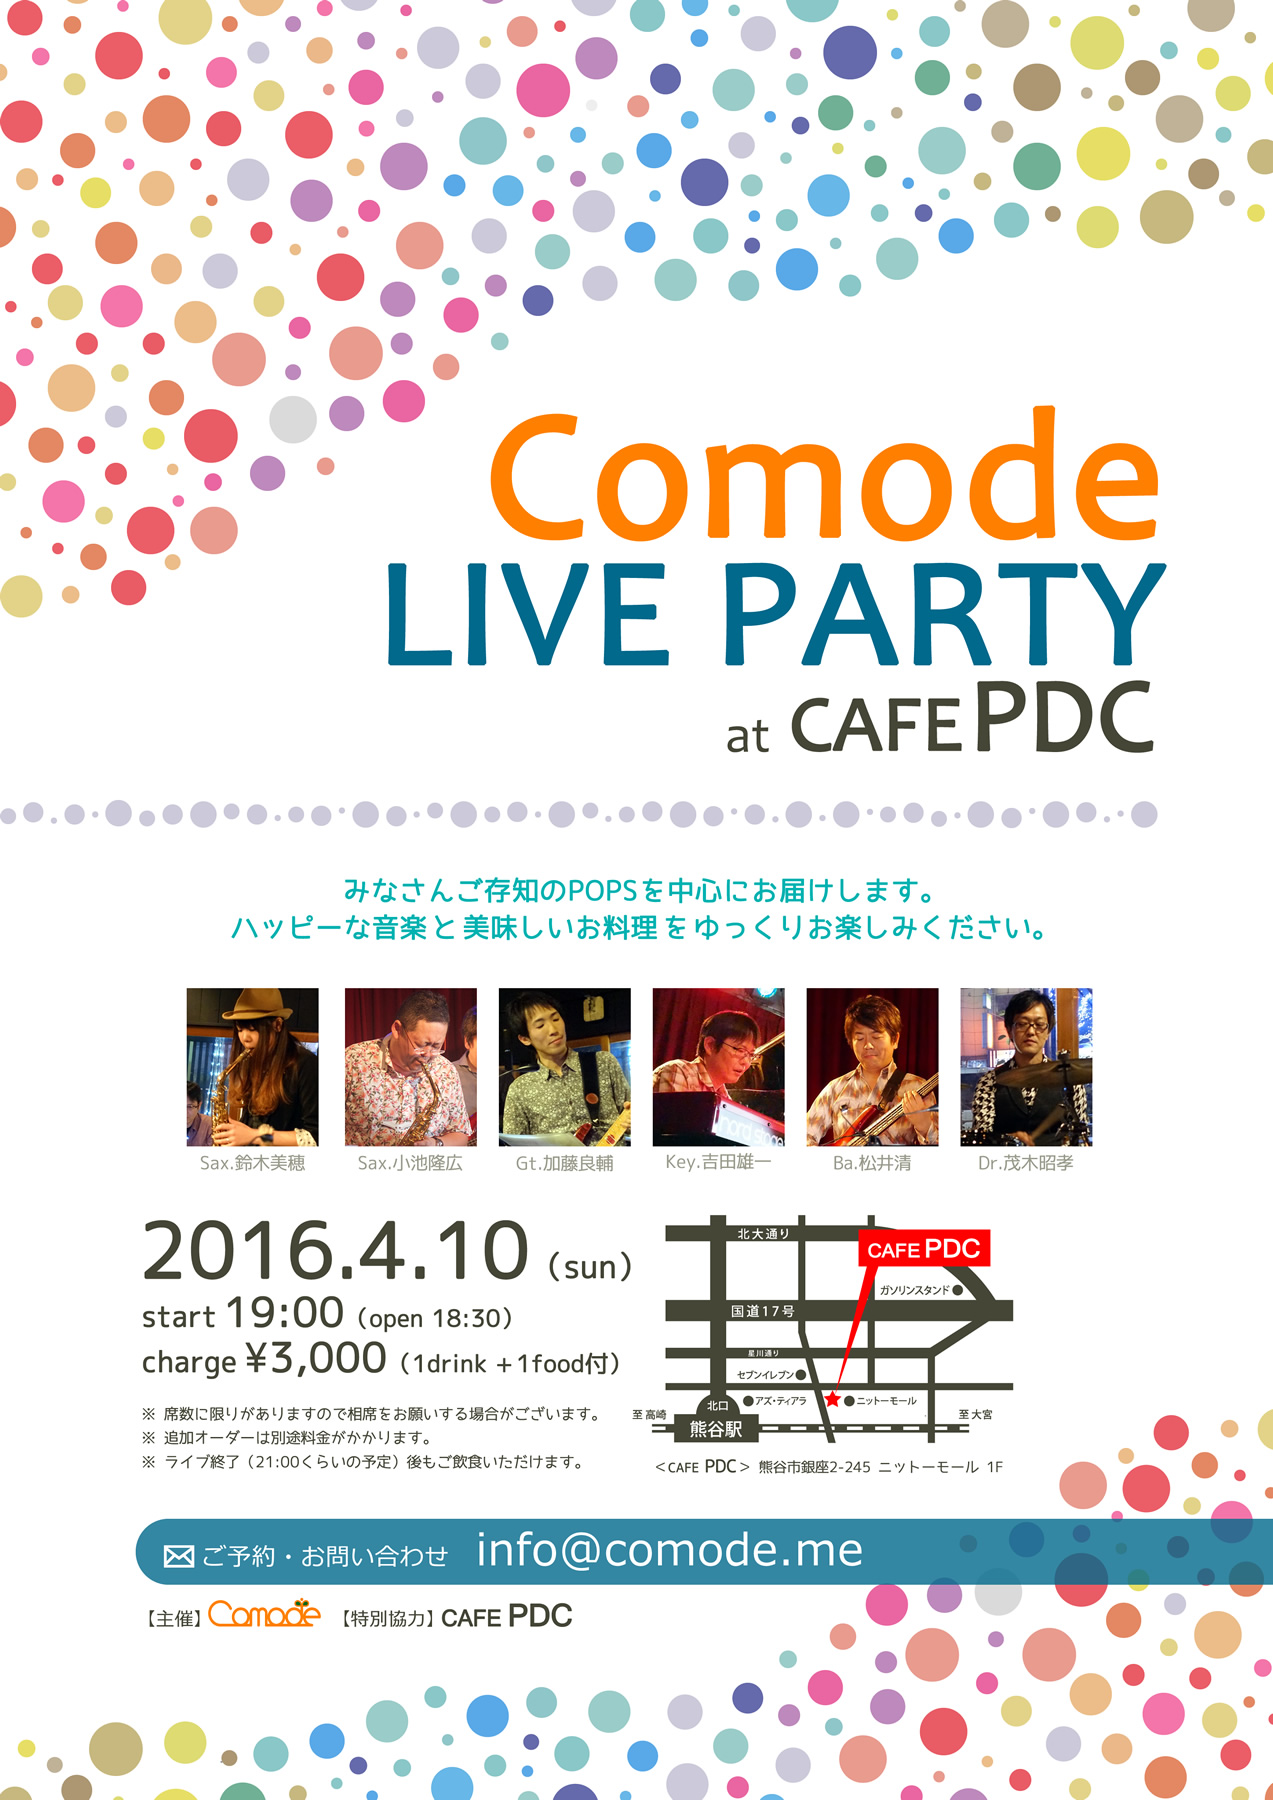 Comode ライブパーティー at CAFE PDC 2016年4月10日